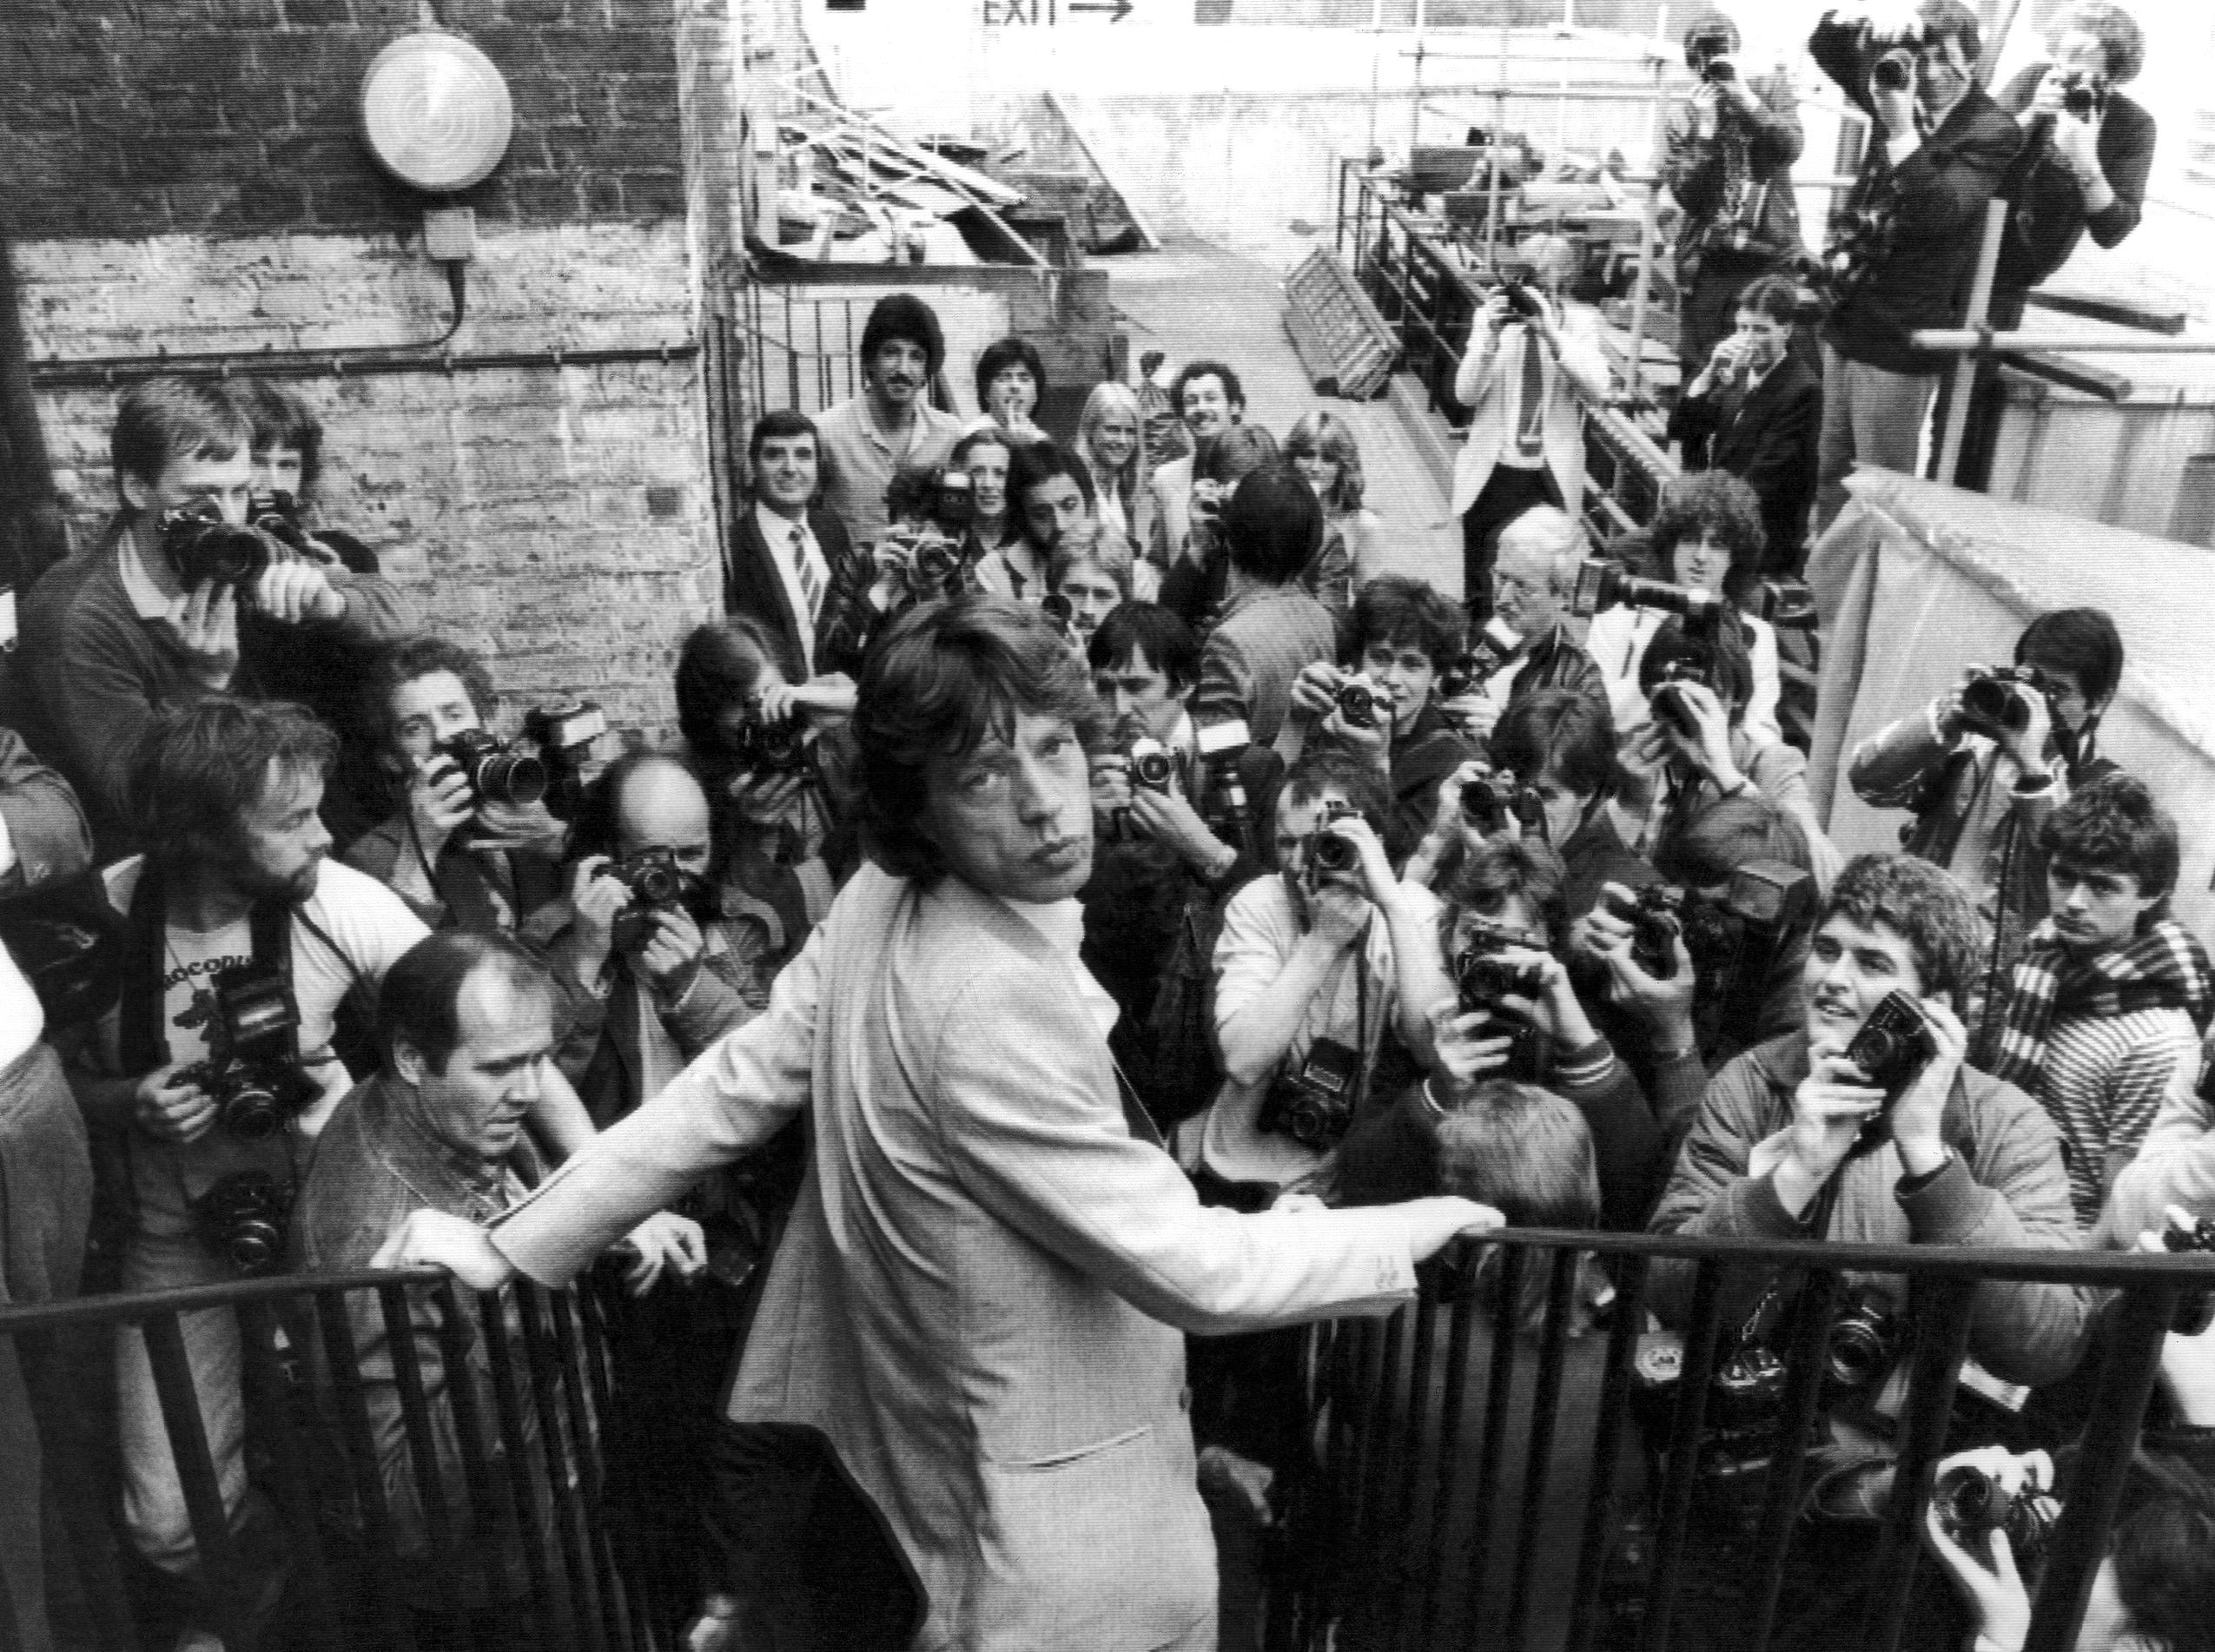 Mick Jagger of The Rolling Stones pop group, at the press conference at the La Beat Route Club in London's Soho district, England on April 28, 1982, when it was announced that the group will embark on their first European Tour in six years, starting in Rotterdam on June 4th. (AP Photo/Bob Dear)